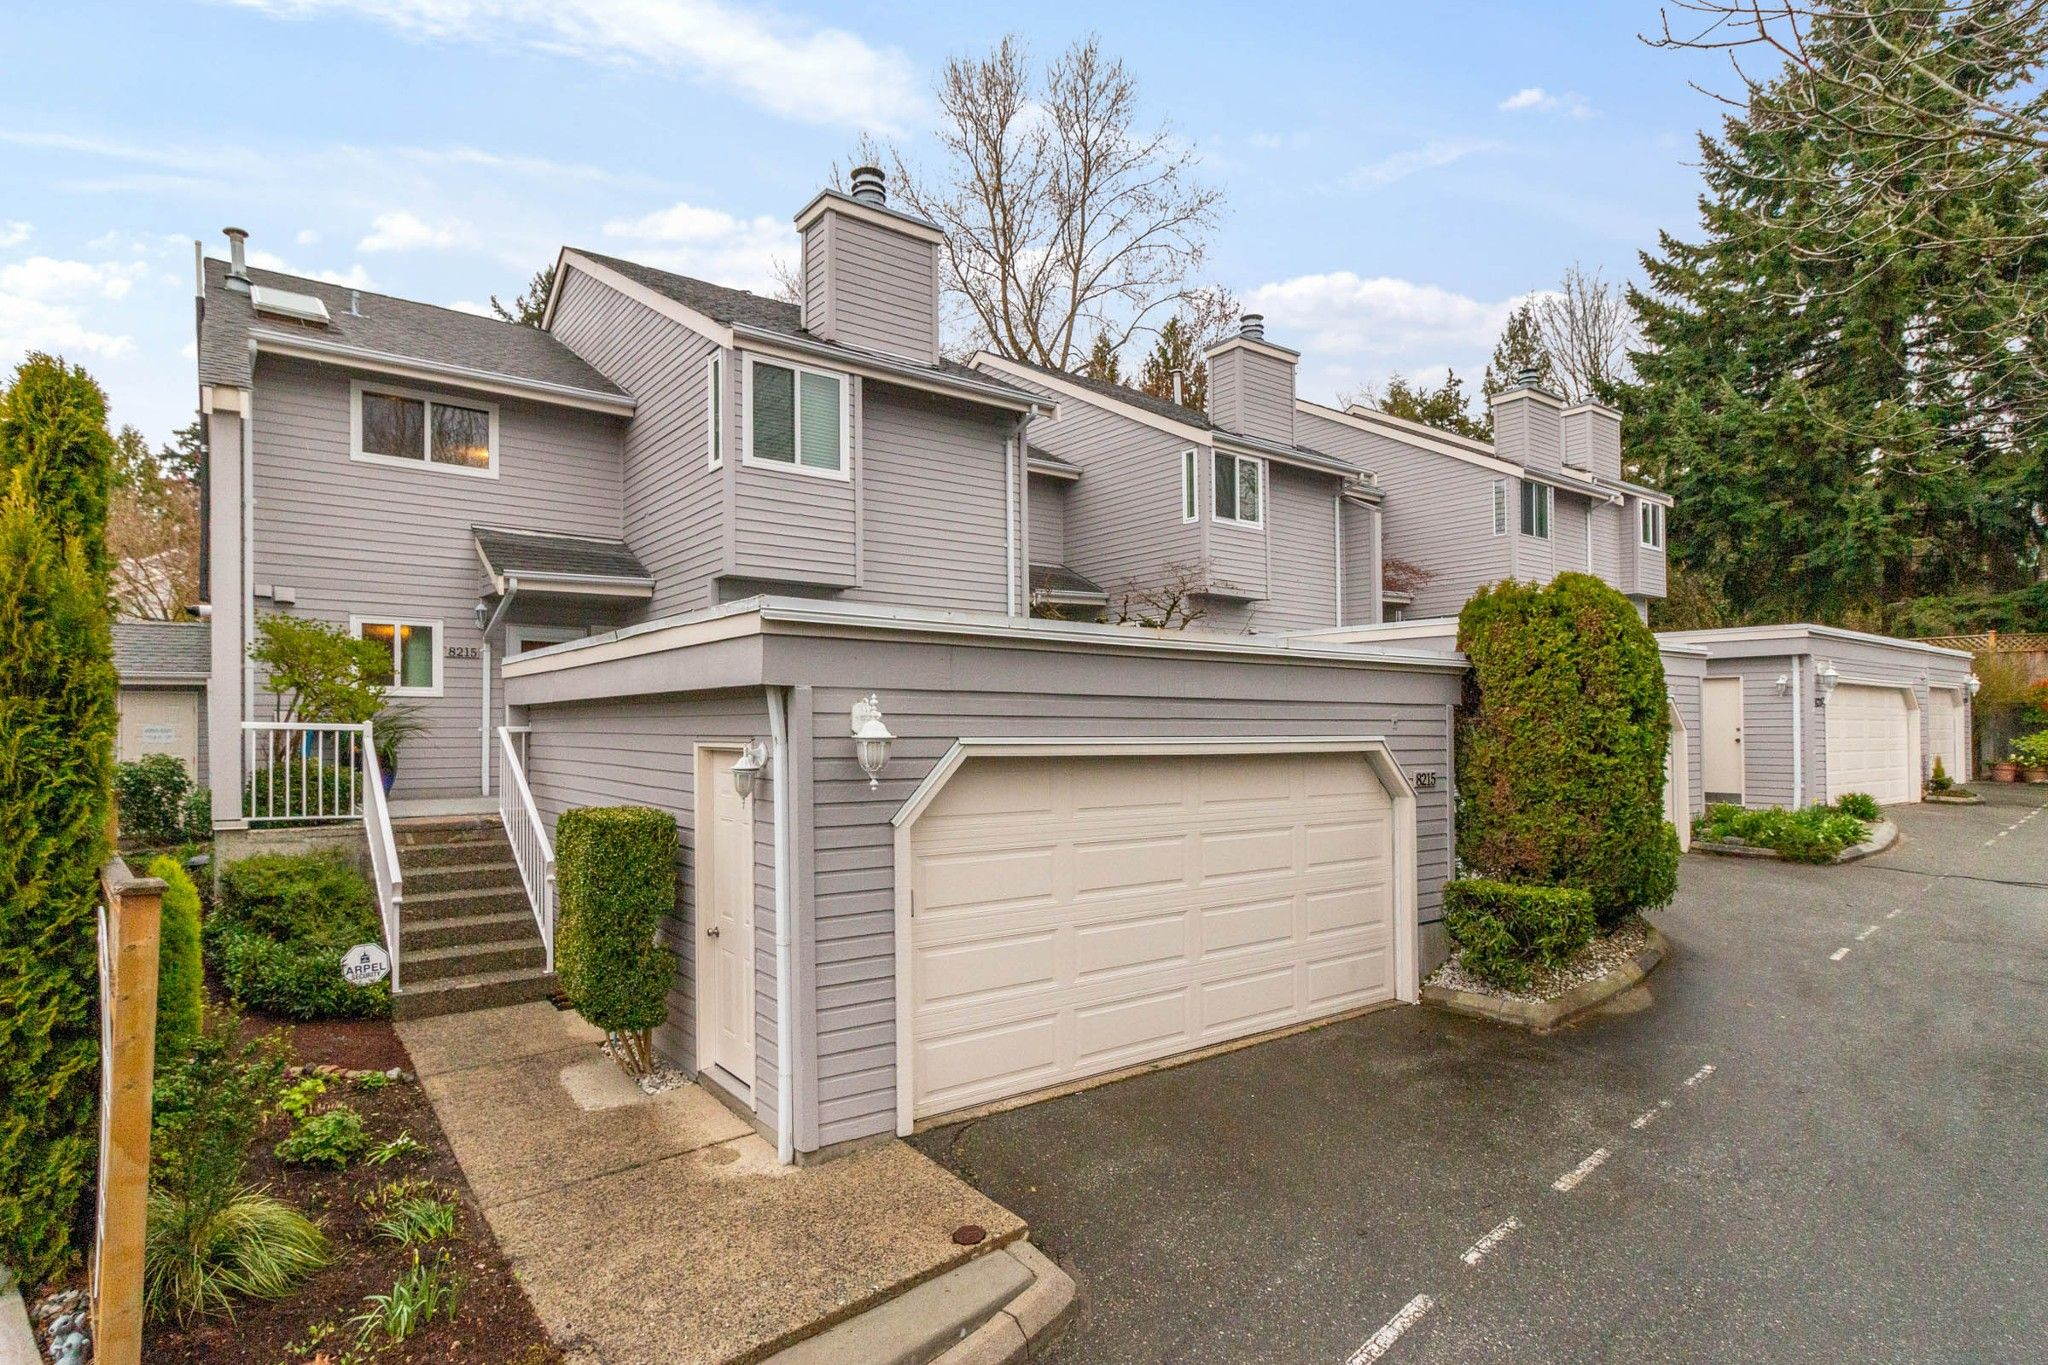 """Main Photo: 8215 STRAUSS Drive in Vancouver: Champlain Heights Townhouse for sale in """"Ashleigh Heights"""" (Vancouver East)  : MLS®# R2565596"""